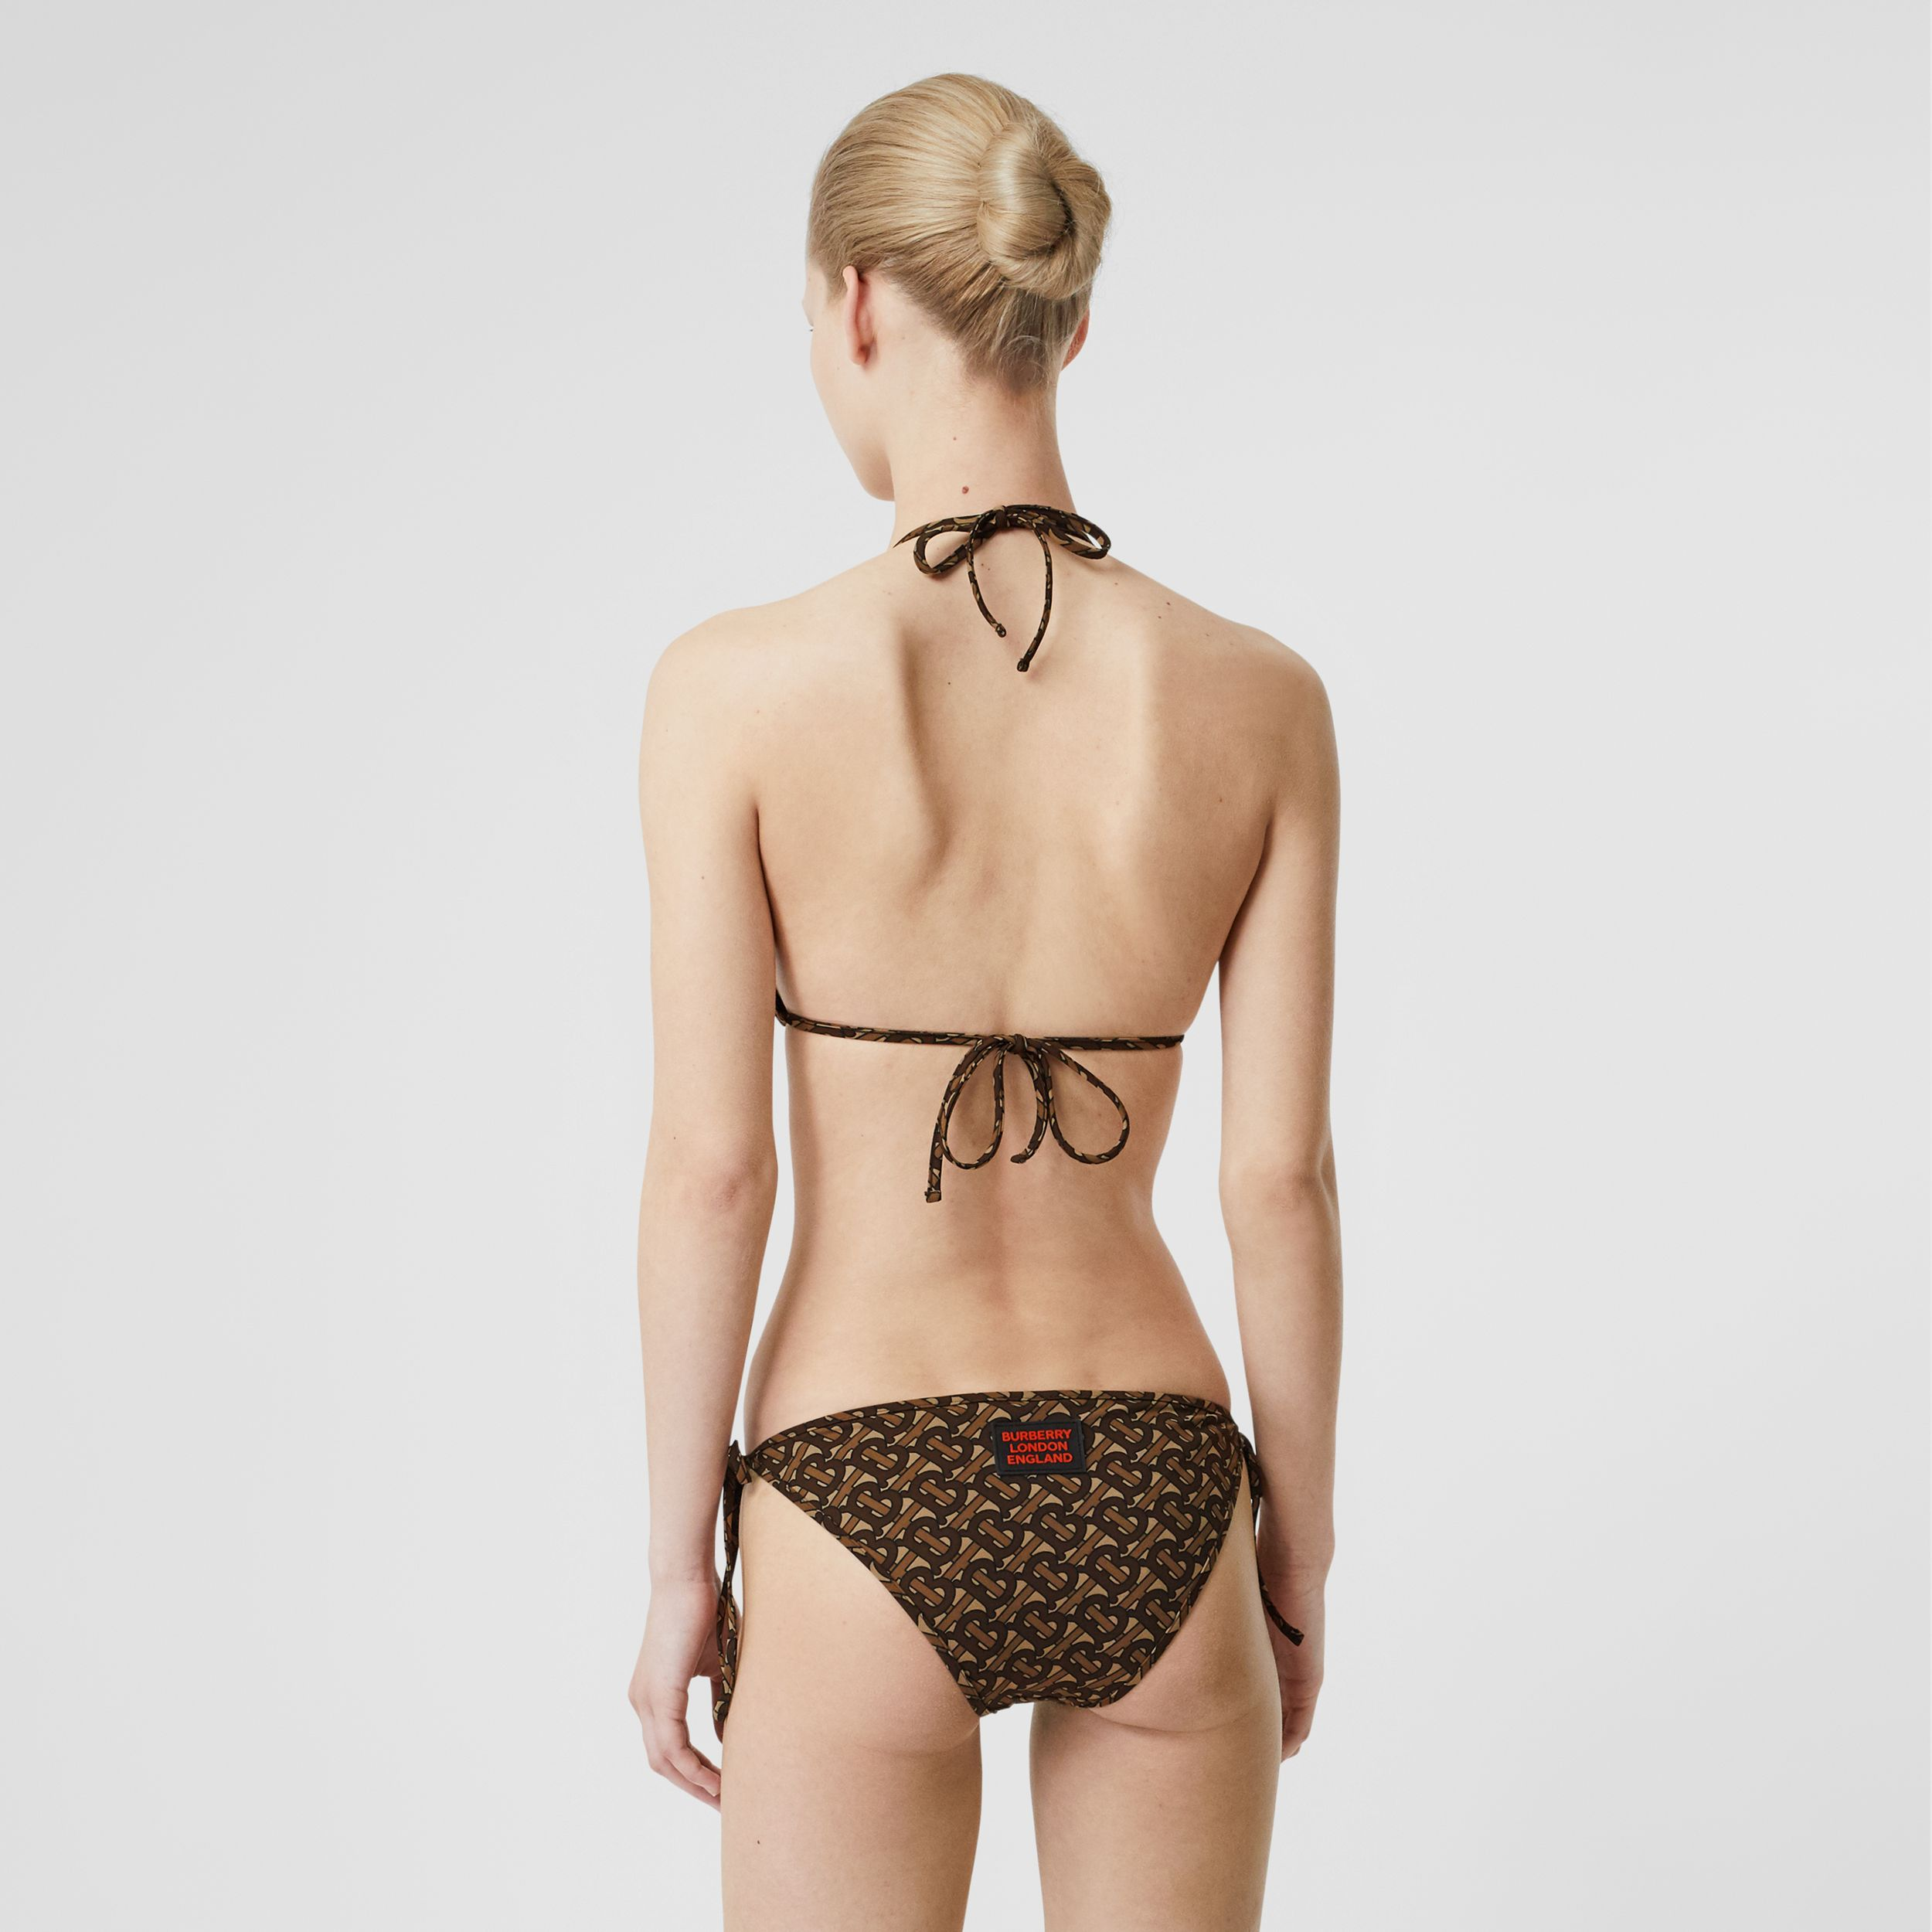 Monogram Print Triangle Bikini in Brown - Women | Burberry United Kingdom - 2